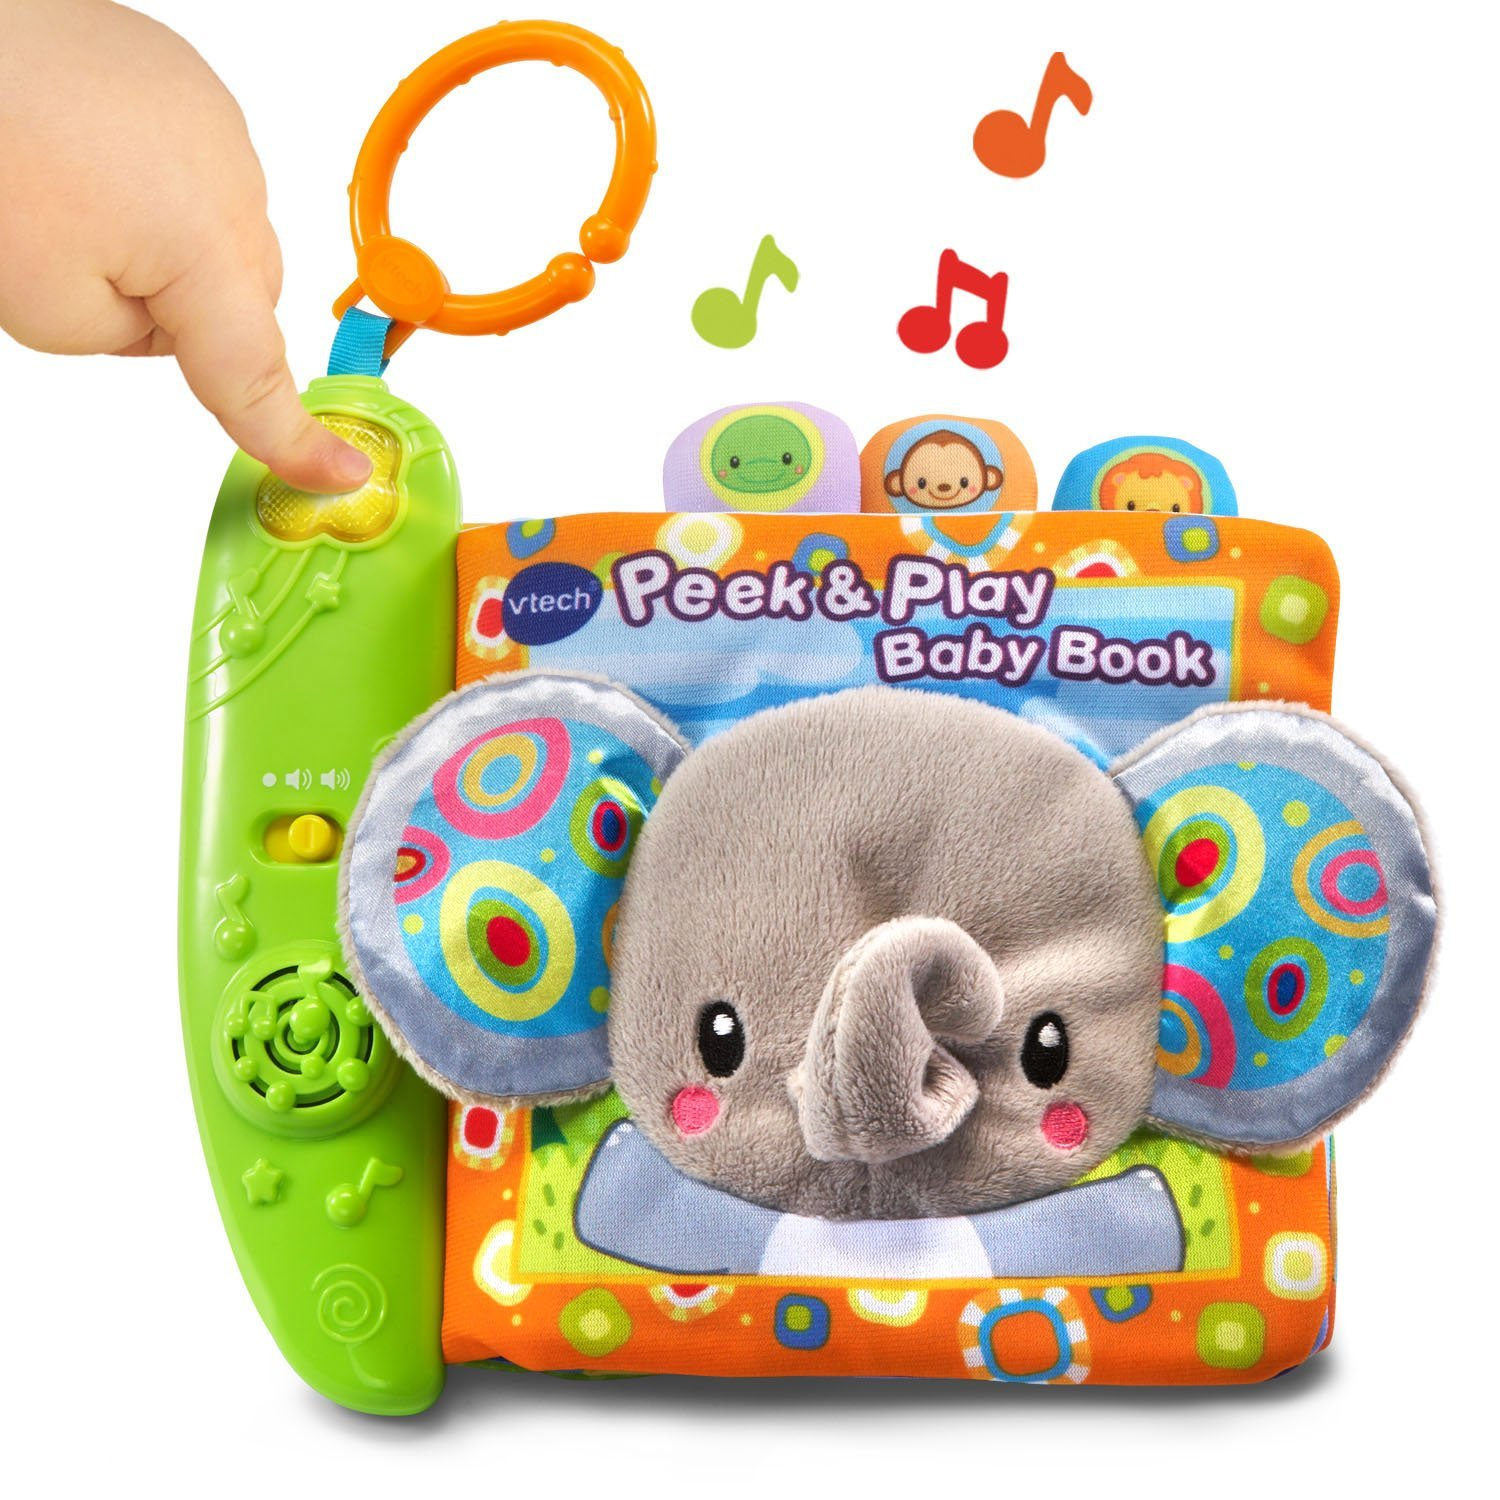 Amazon VTech 80 Peek & Play Baby Book Toy Toys & Games